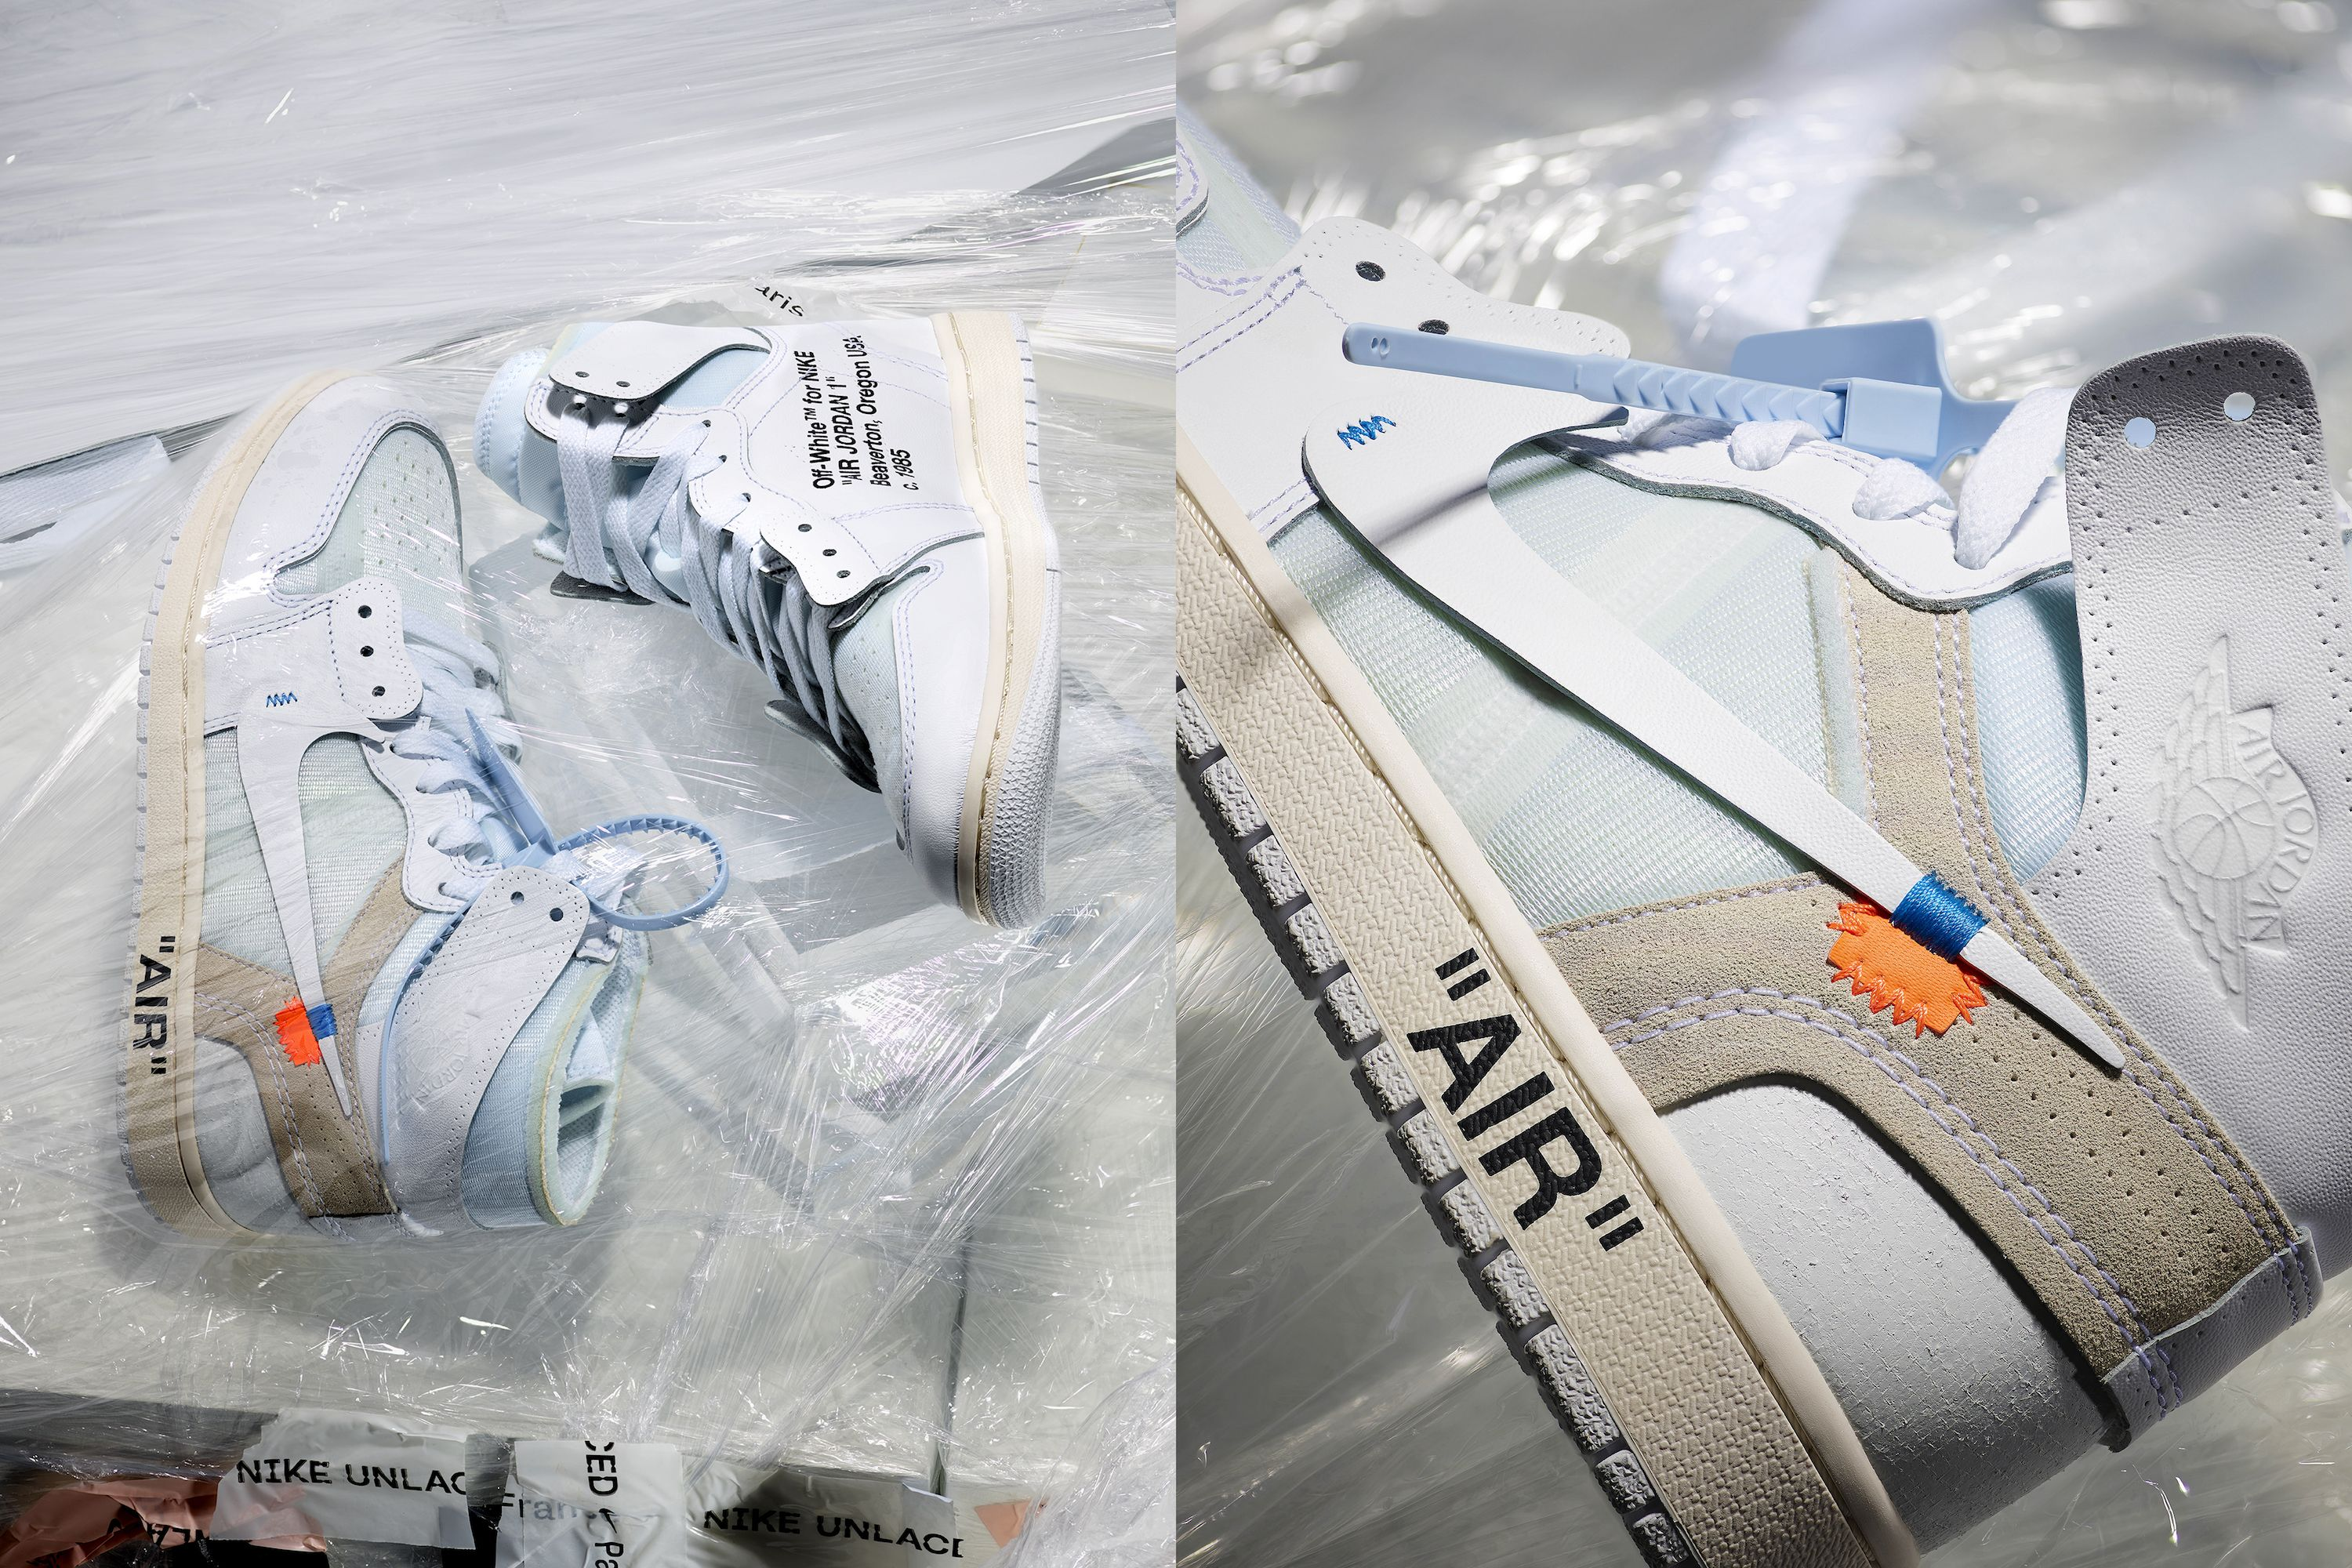 Off White for Nike sneakers at Nike Unlaced.